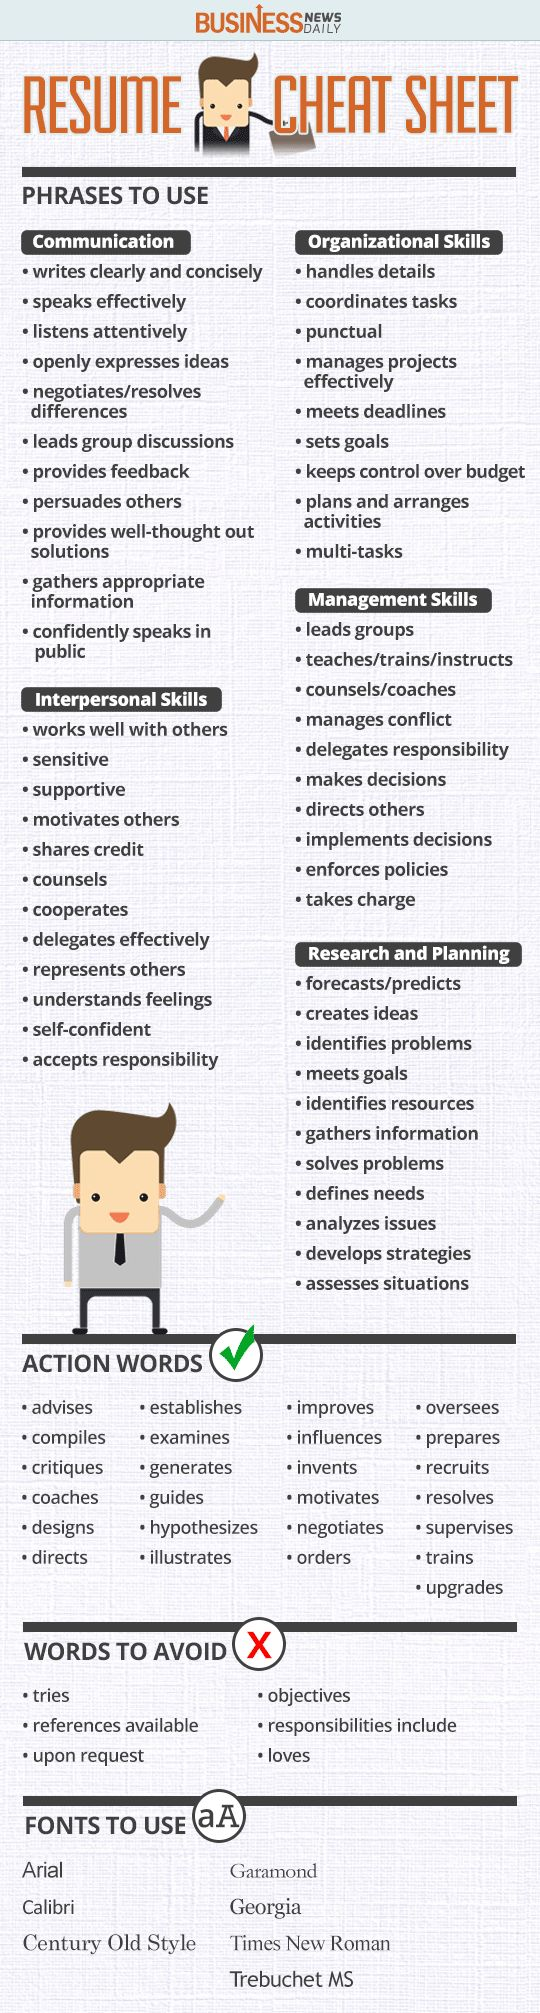 Opposenewapstandardsus  Unique  Ideas About Resume On Pinterest  Cv Format Resume Cv And  With Magnificent Resume Cheat Sheet Infographic Andrews Almost Done With A Complete Unit On Employment Which With Extraordinary Mba Resume Template Also Best Places To Post Resume In Addition High School Resume For College Application And Sample Skills Resume As Well As Etl Testing Resume Additionally Creative Resume Builder From Pinterestcom With Opposenewapstandardsus  Magnificent  Ideas About Resume On Pinterest  Cv Format Resume Cv And  With Extraordinary Resume Cheat Sheet Infographic Andrews Almost Done With A Complete Unit On Employment Which And Unique Mba Resume Template Also Best Places To Post Resume In Addition High School Resume For College Application From Pinterestcom